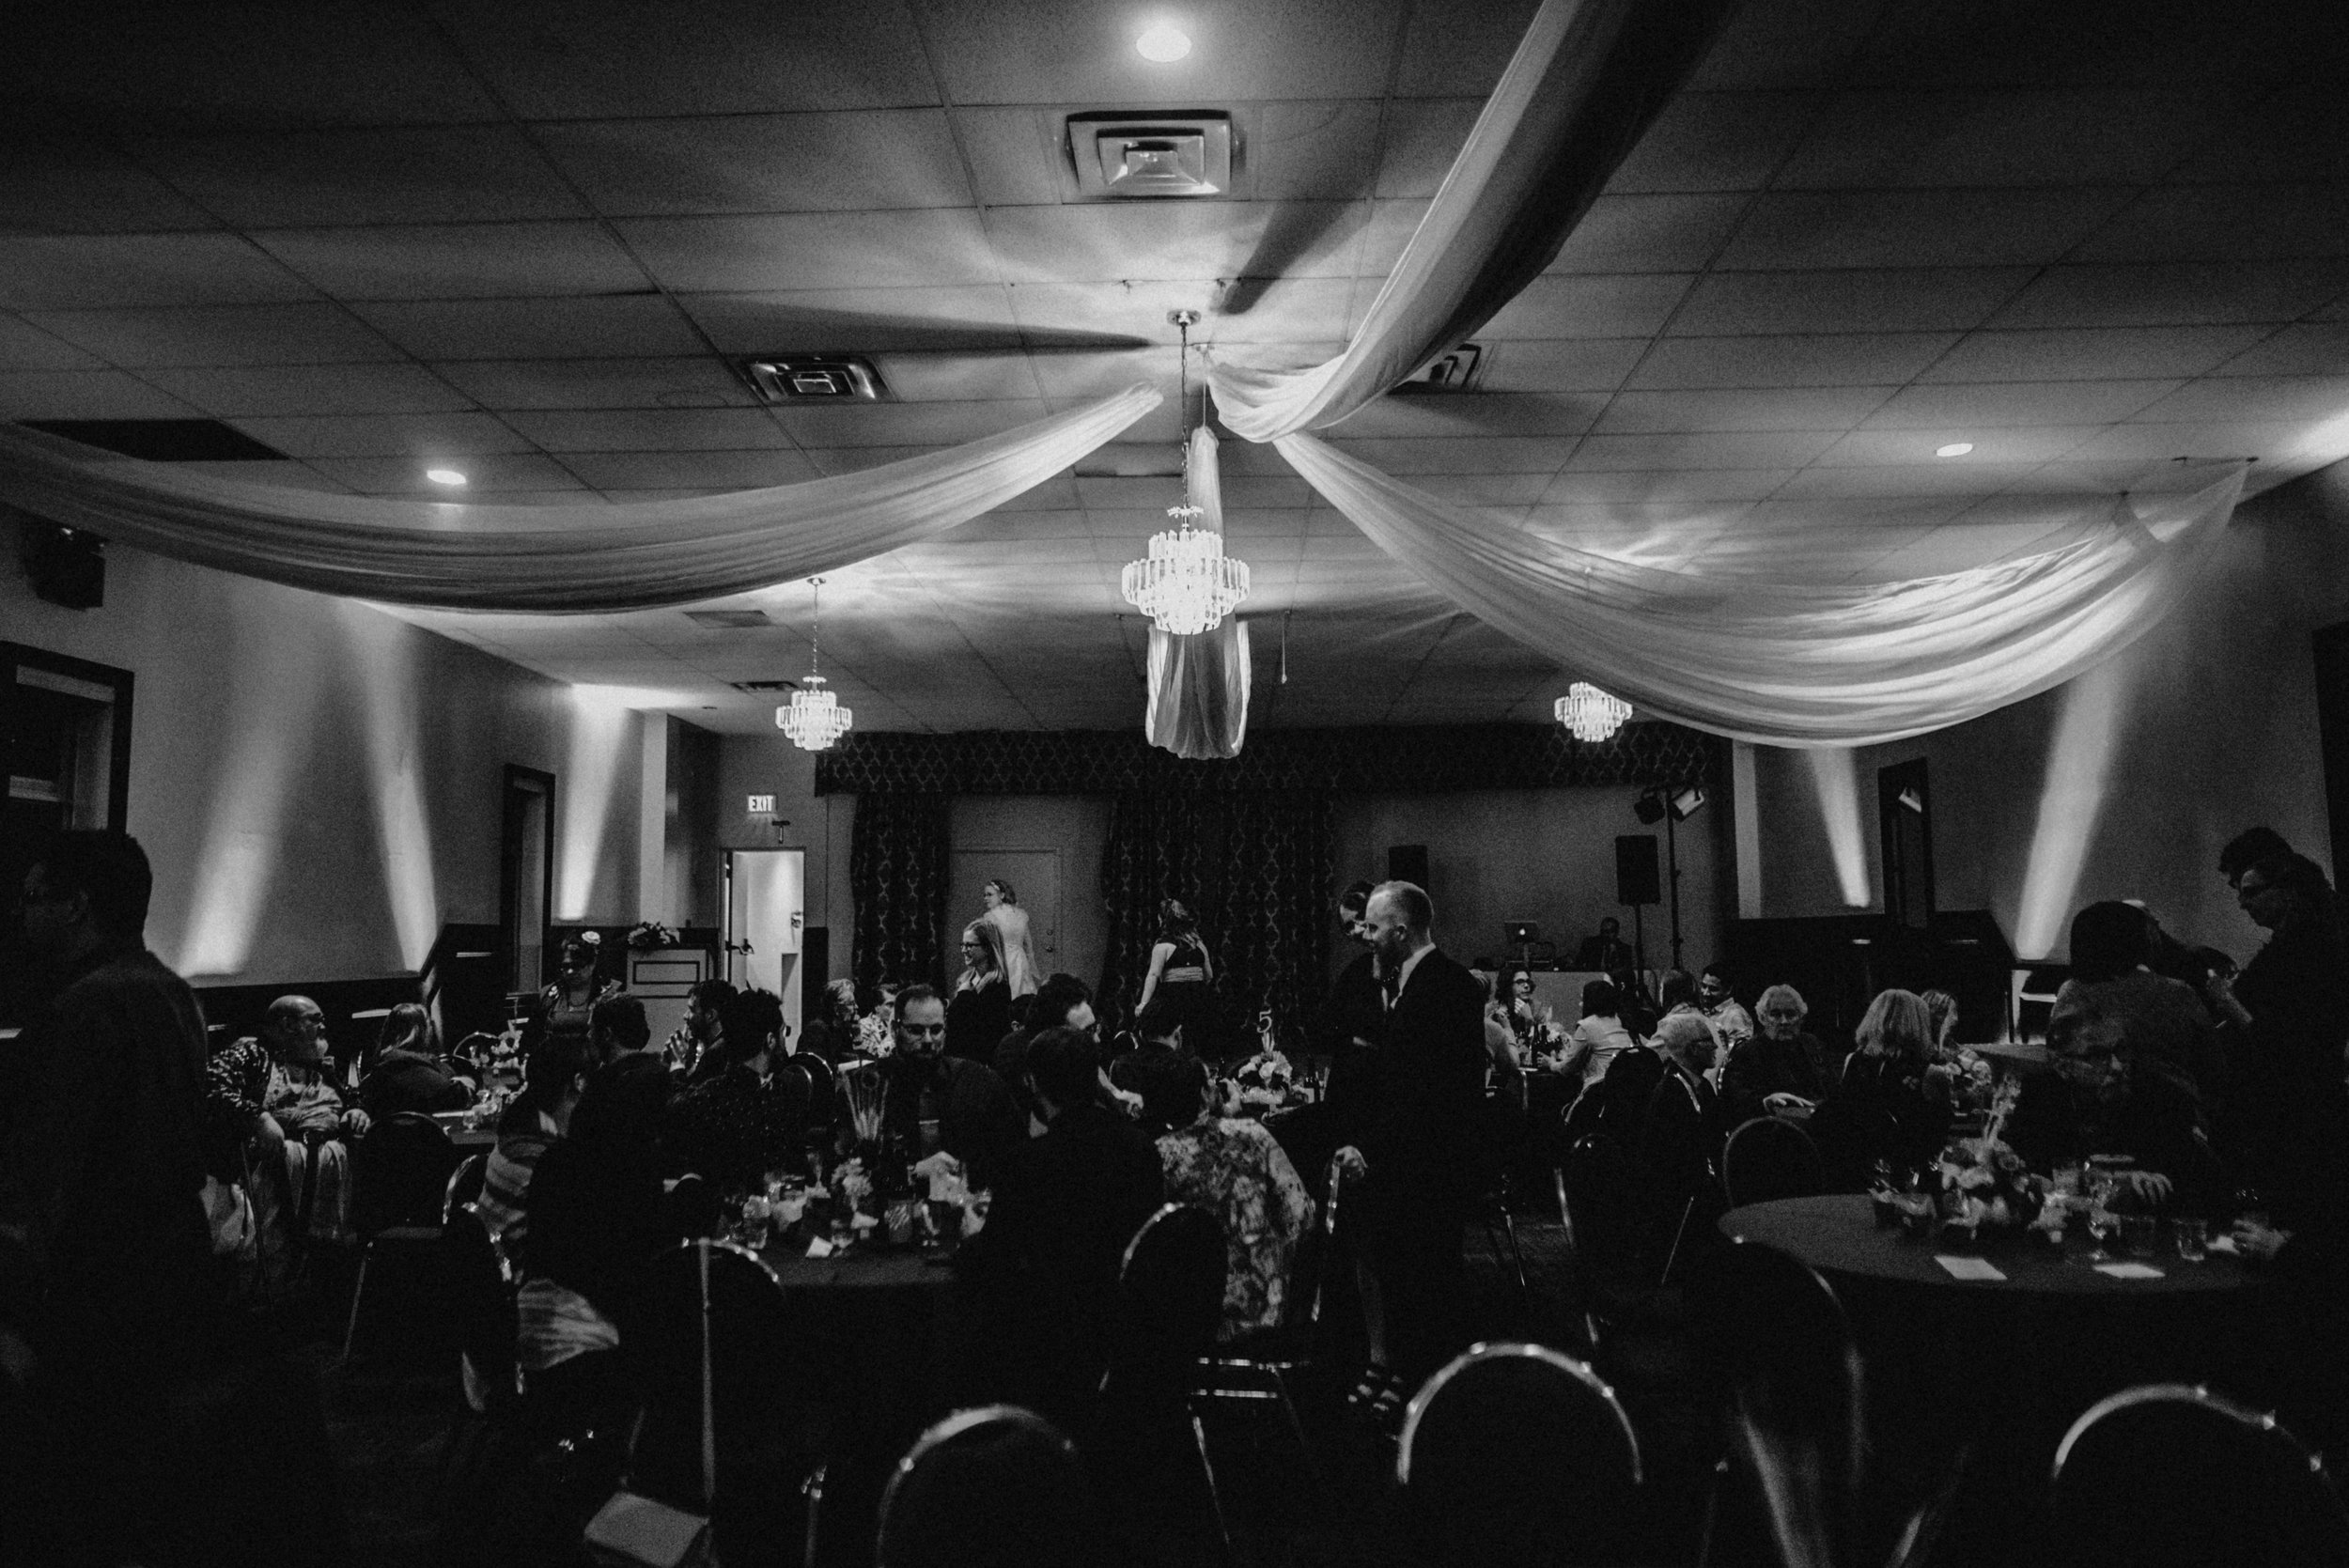 photographe_gatineau_mariage_ottawa_photographer_wedding_natasha_liard_photo_documentary_candid_lifestyle_intimate_intime (34).jpg